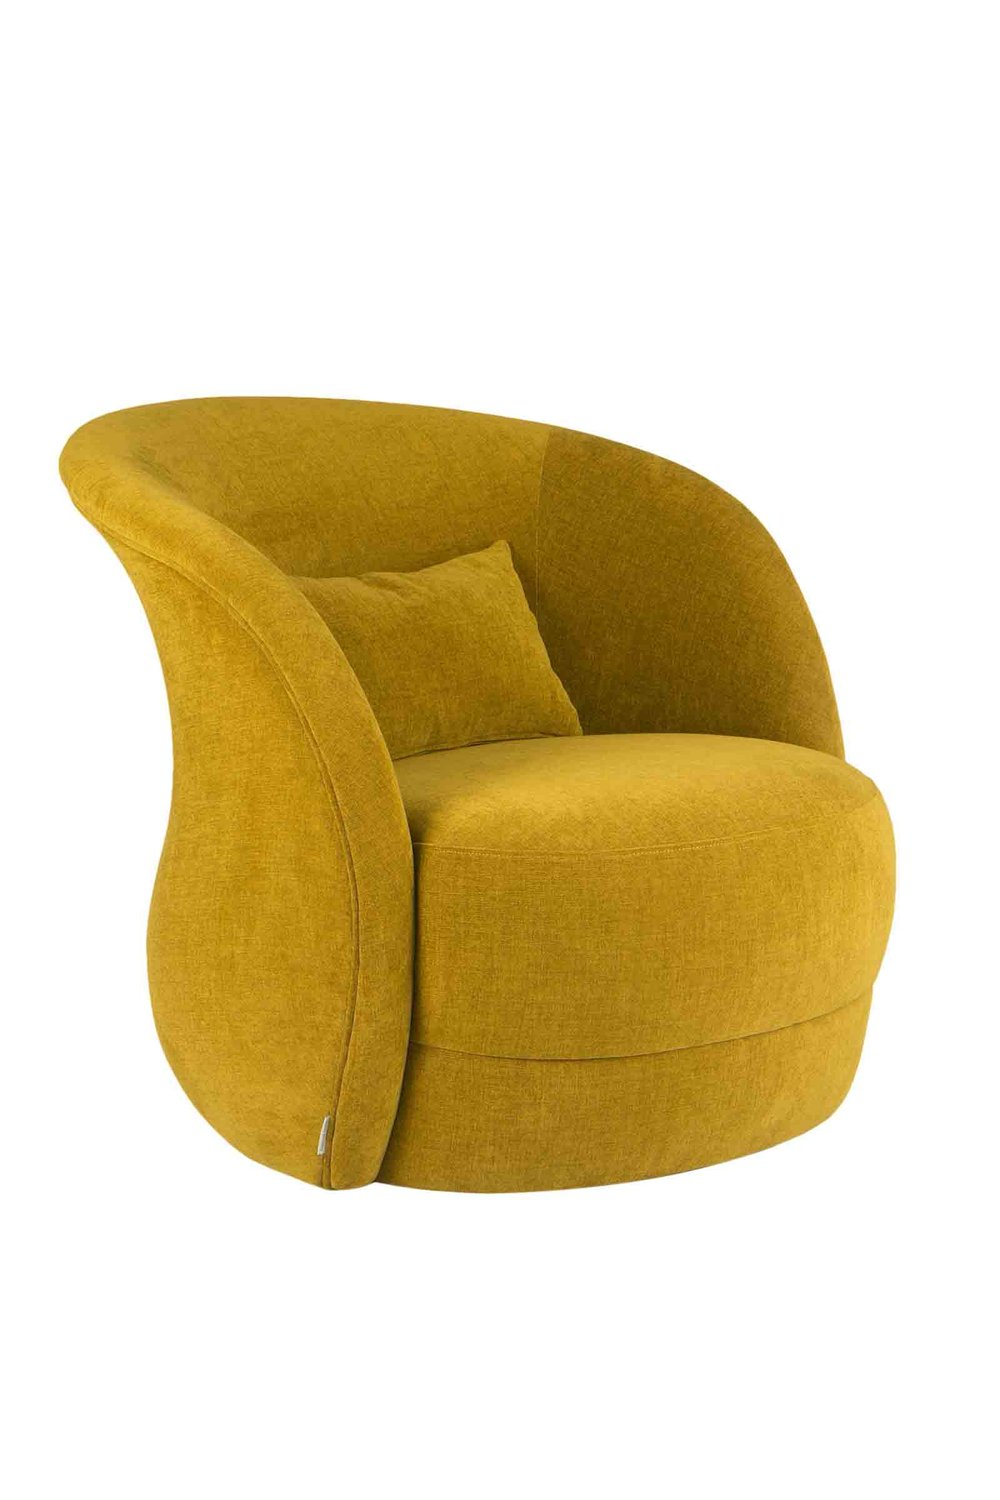 'Laura' chair from Hamilton Conte